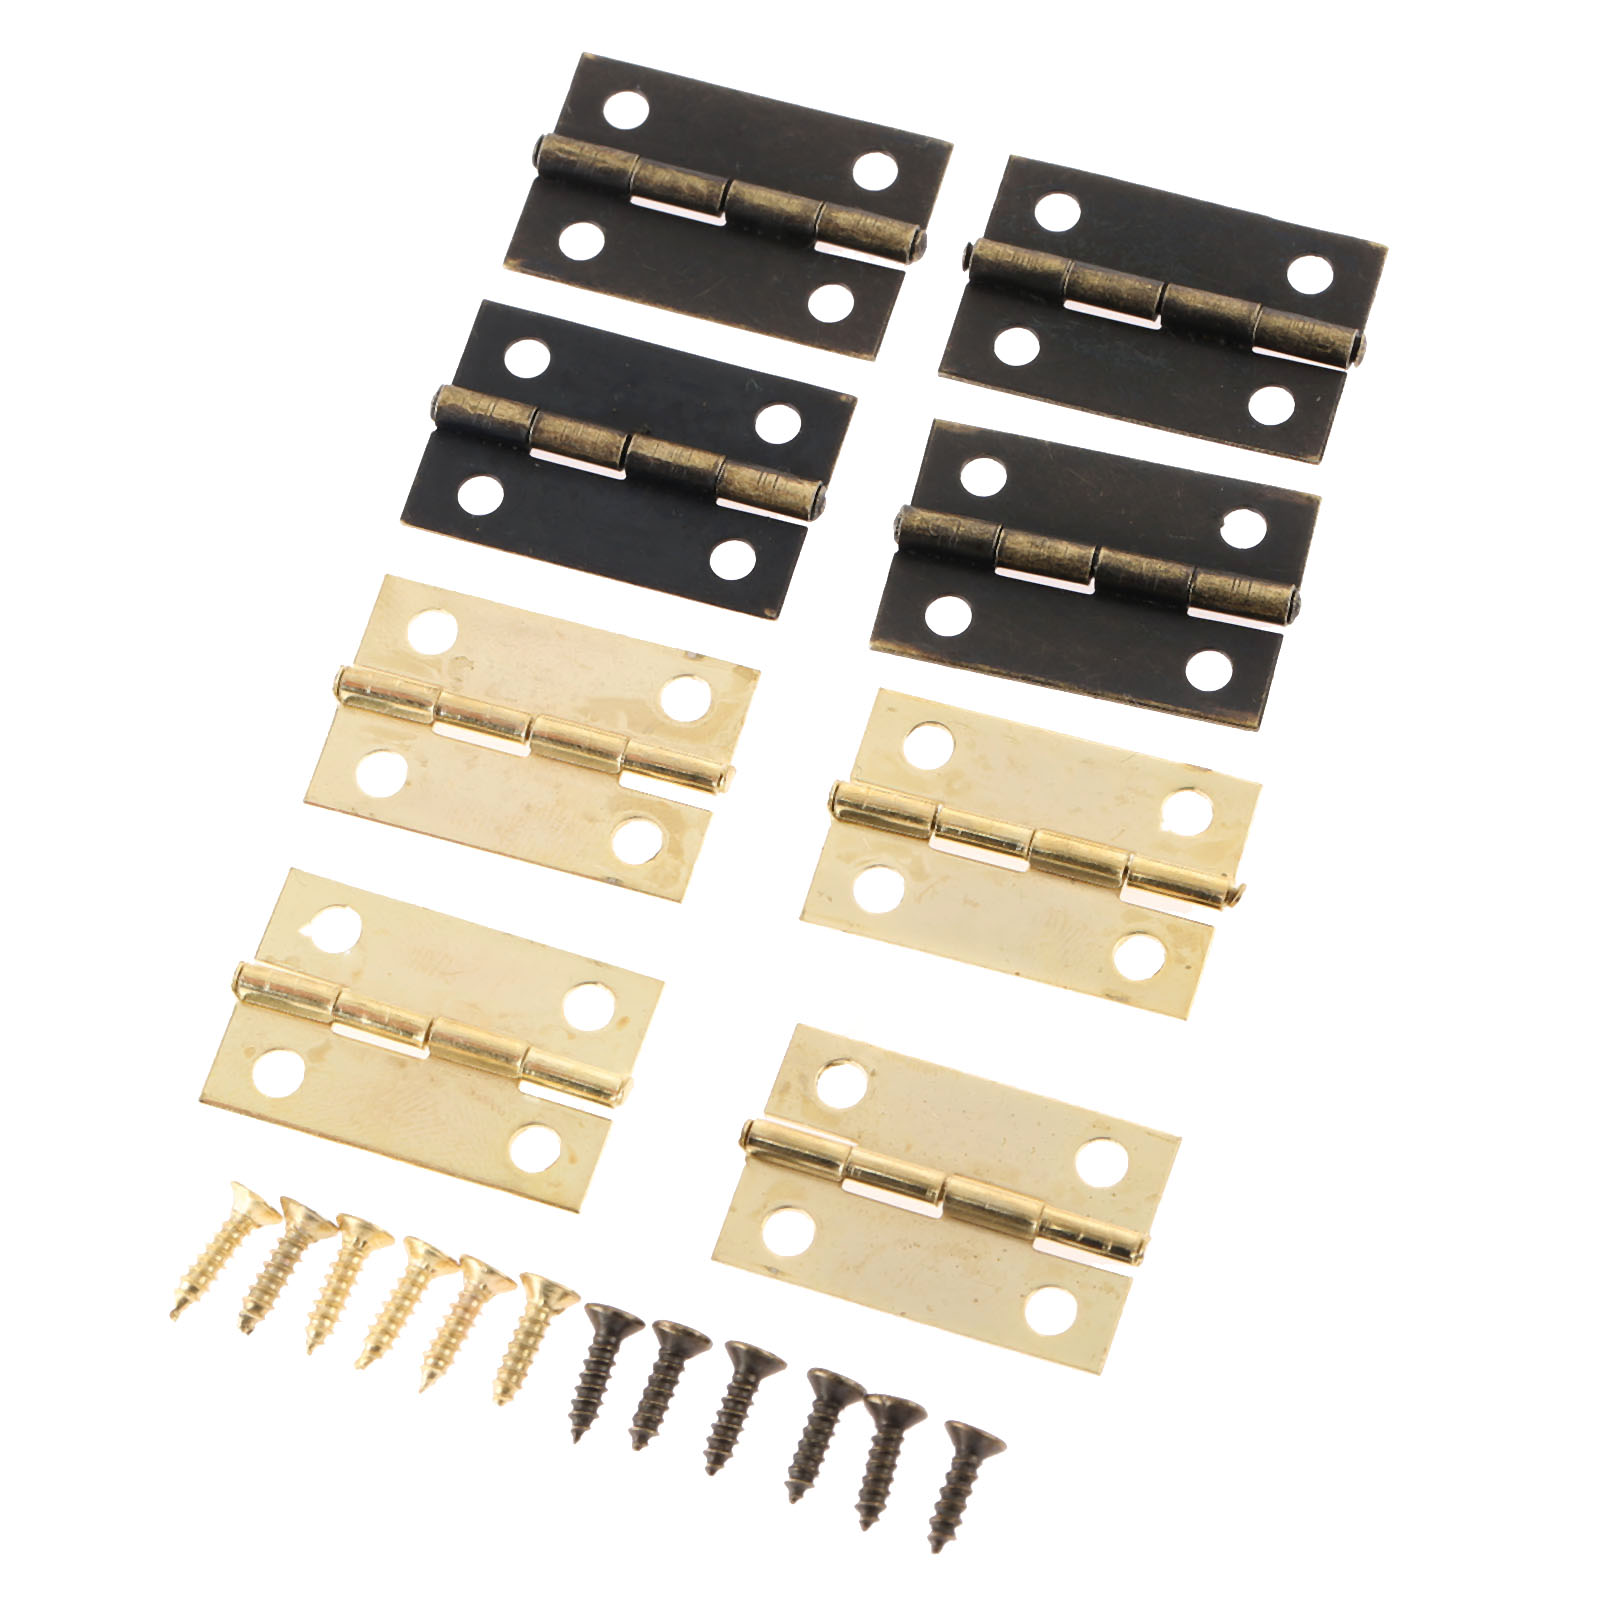 10Pcs 24*16mm Furniture Hinges Cabinet Drawer Door Butt Hinge Antique Bronze/Gold Decorative Hinges For Jewelry Box With Screws 10pcs kak antique bronze hinges cabinet door drawer decorative mini hinge for jewelry storage wooden box furniture h